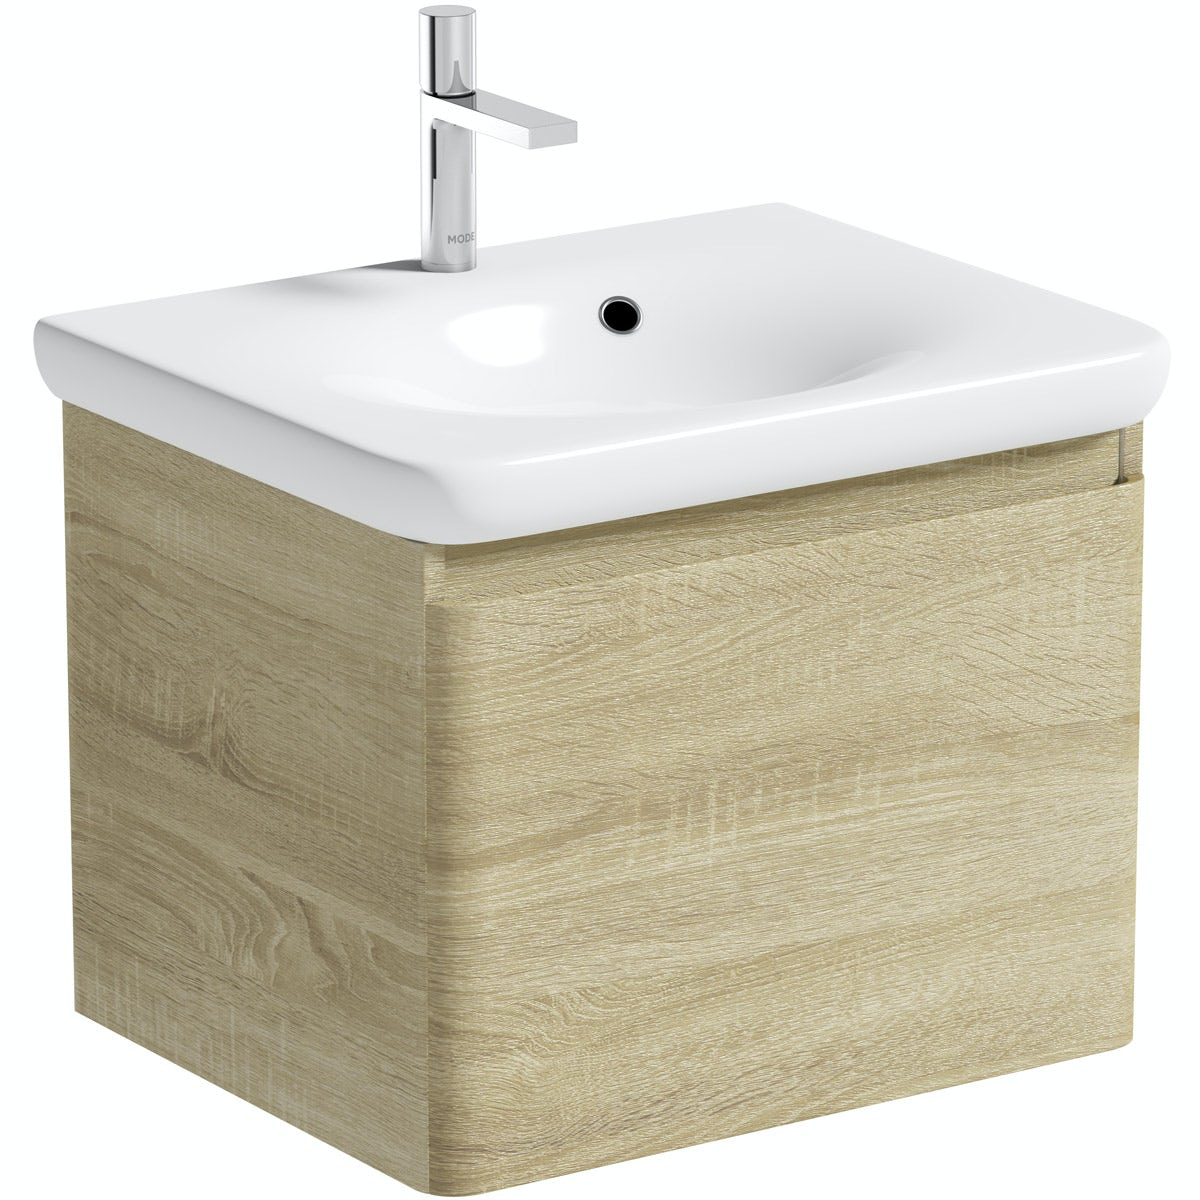 Mode Heath oak wall hung vanity unit and basin 600mm